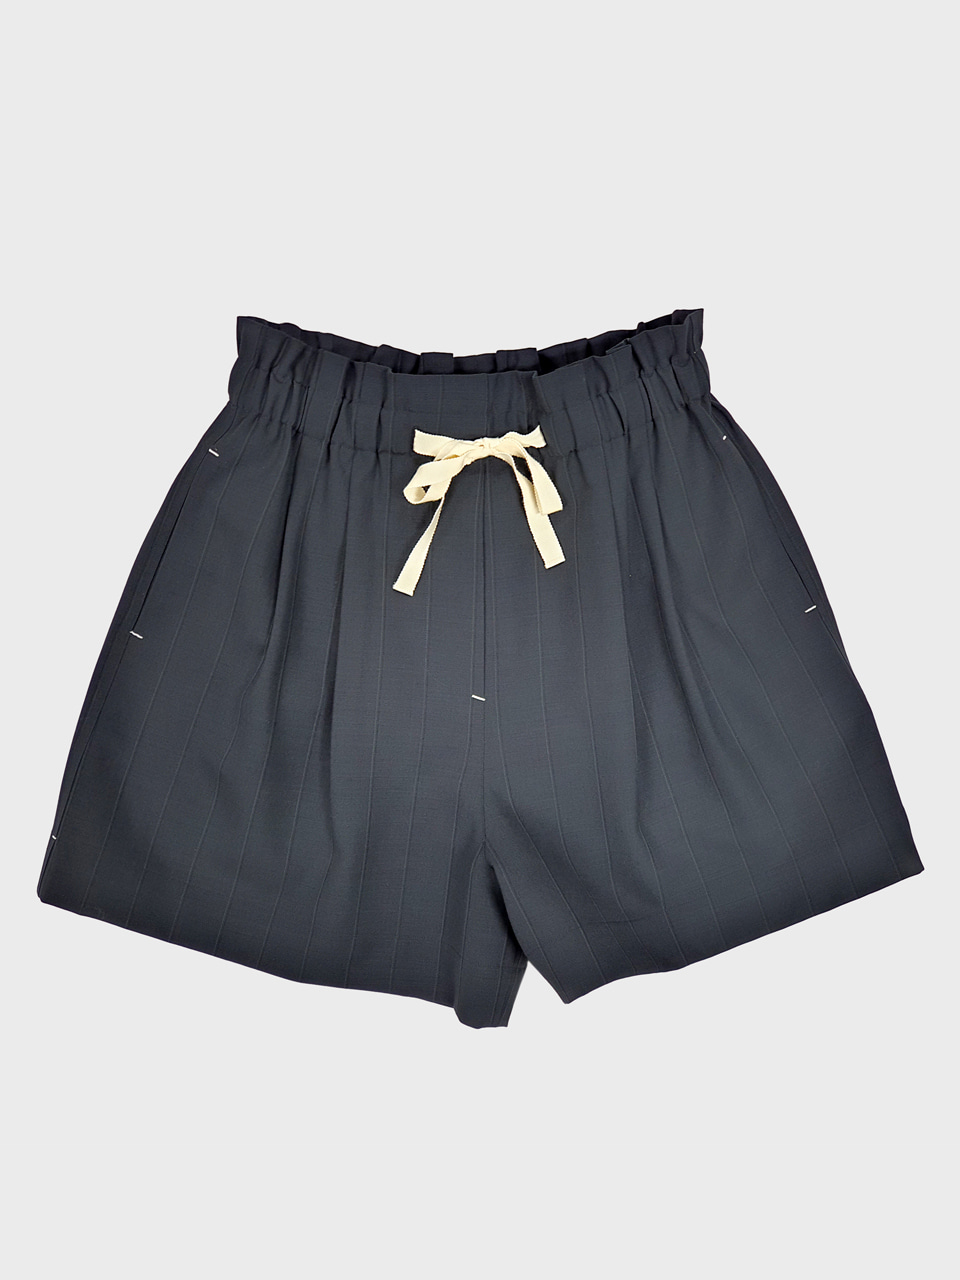 [MUNN] Charcoal Wool Sting Short